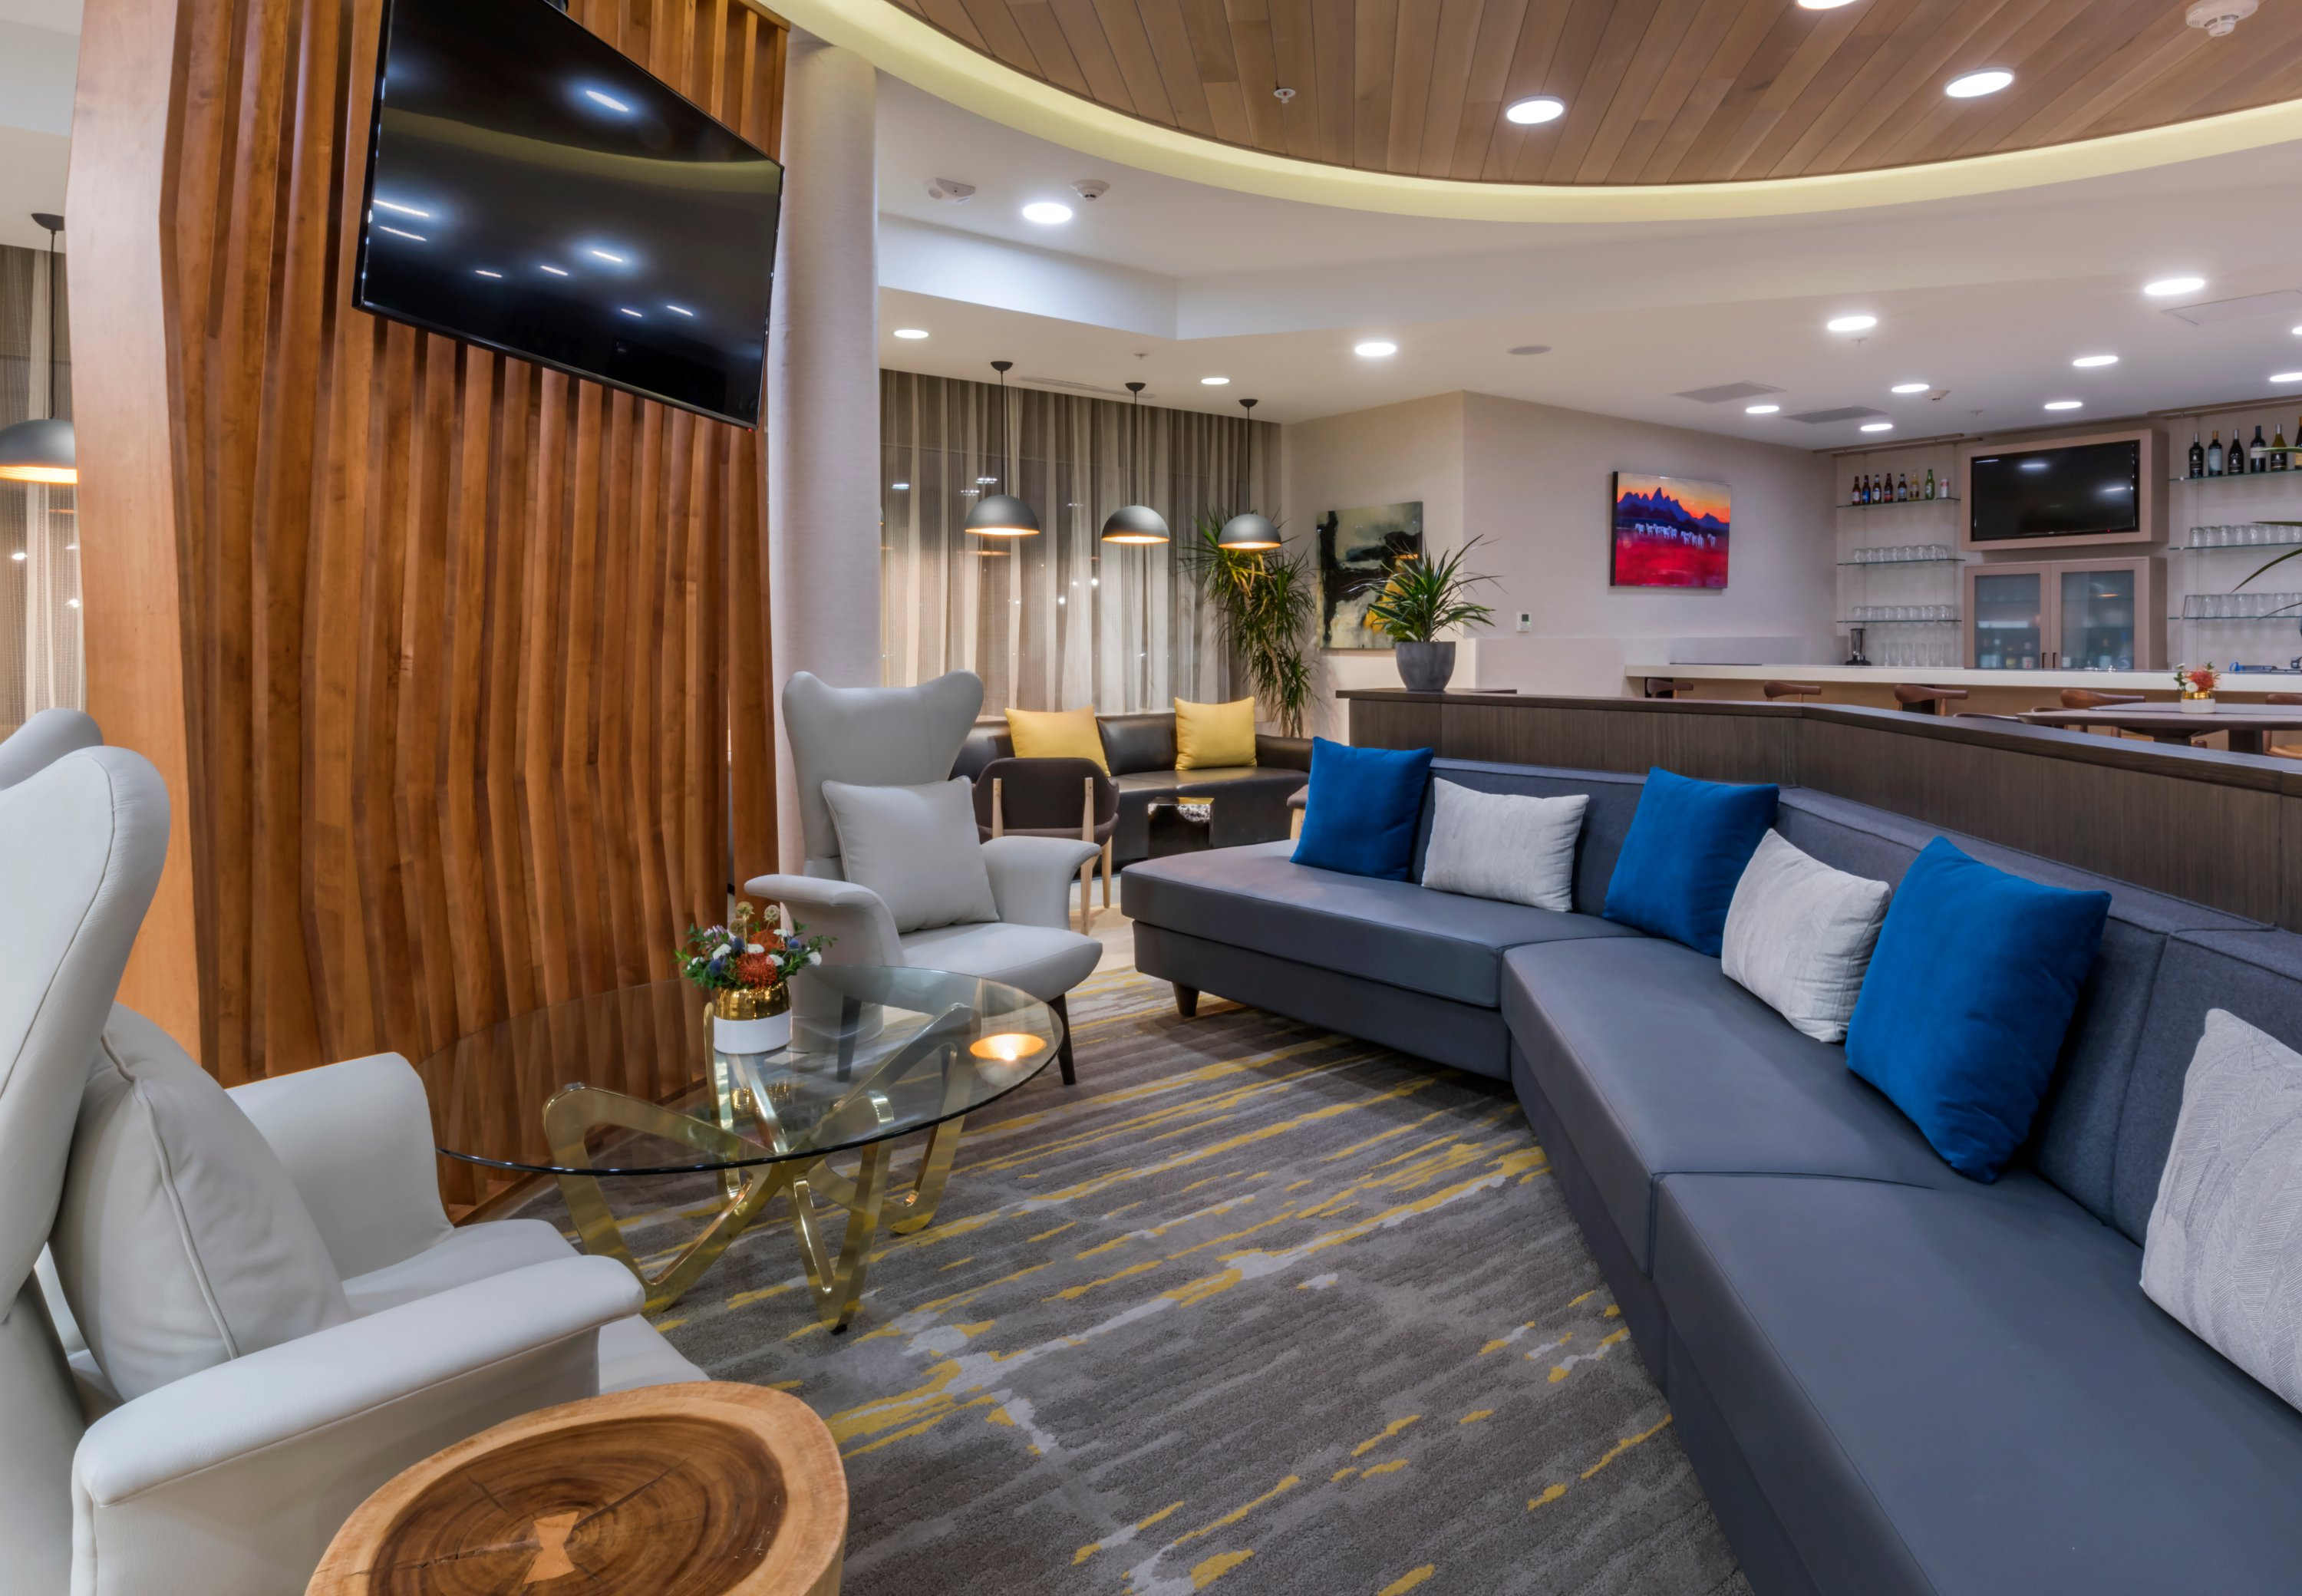 SpringHill Suites by Marriott Jackson Hole image 3